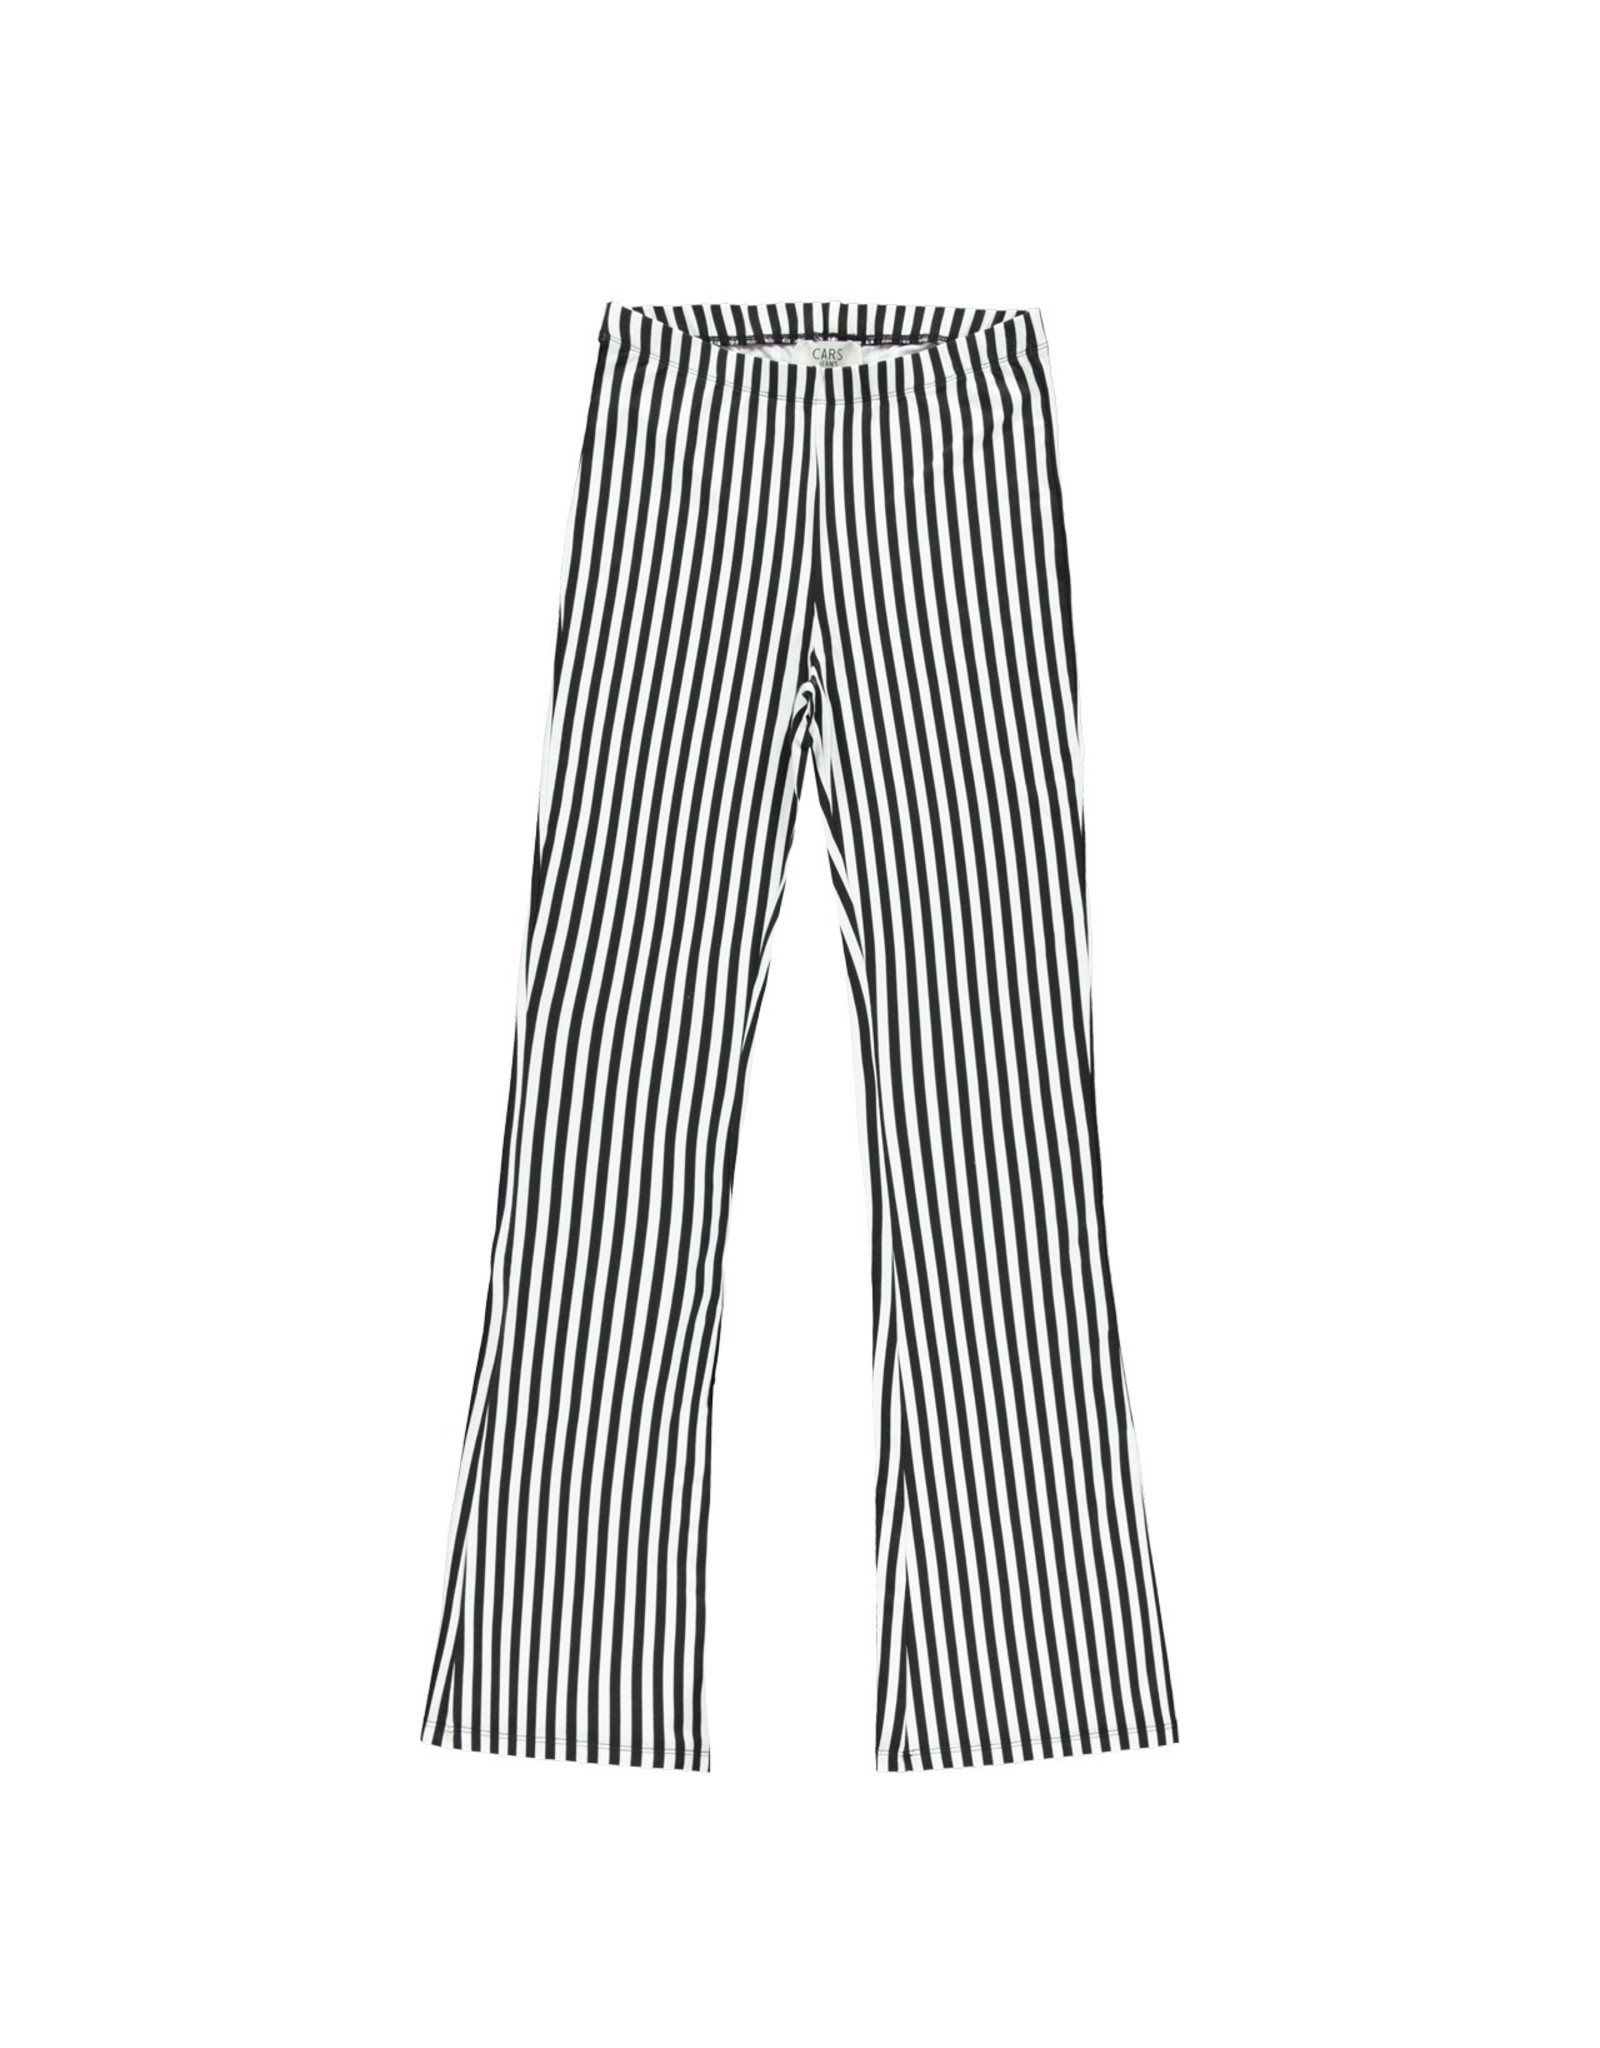 Cars Cars meisjes flaired broek Zuma Black White